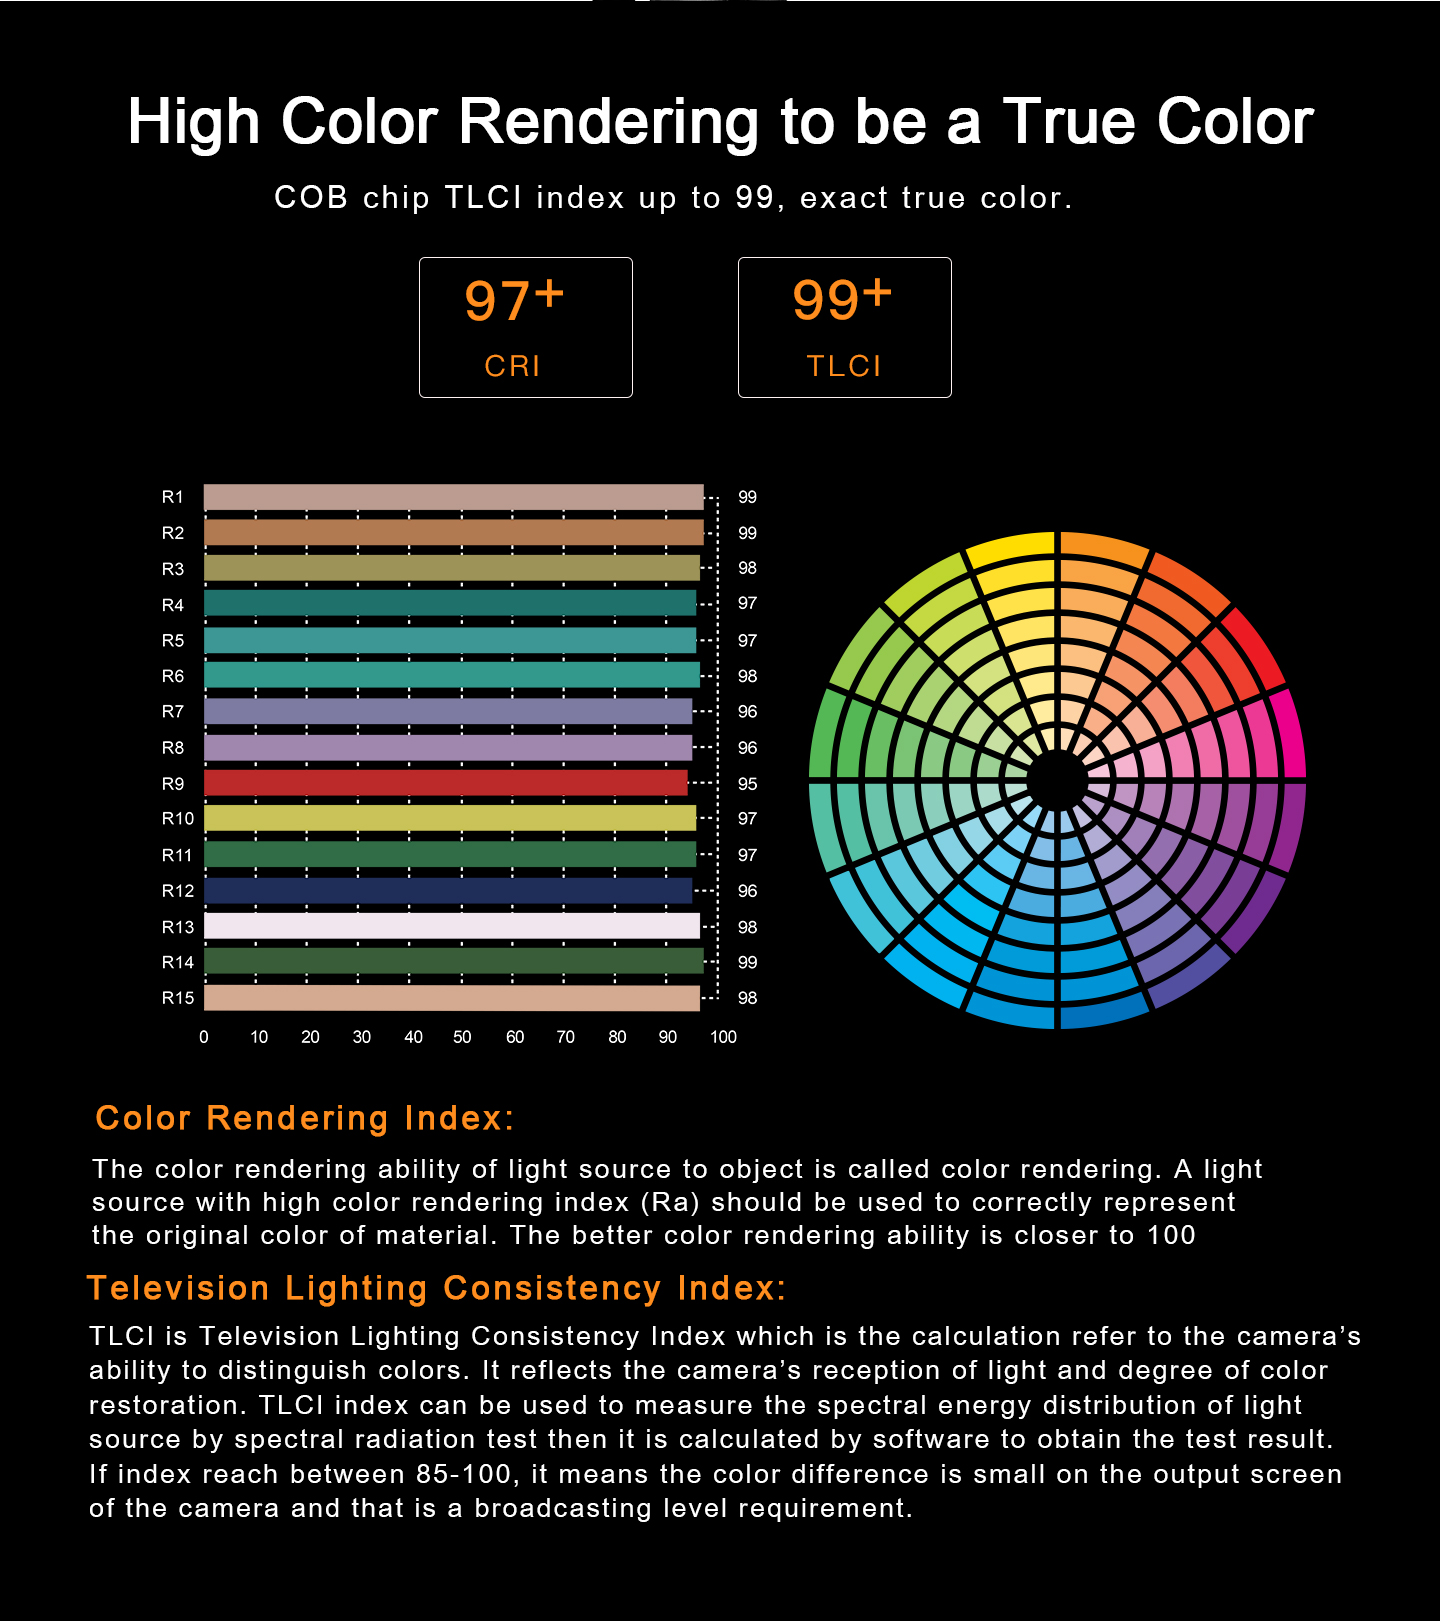 High Color Rendering to be a True Color